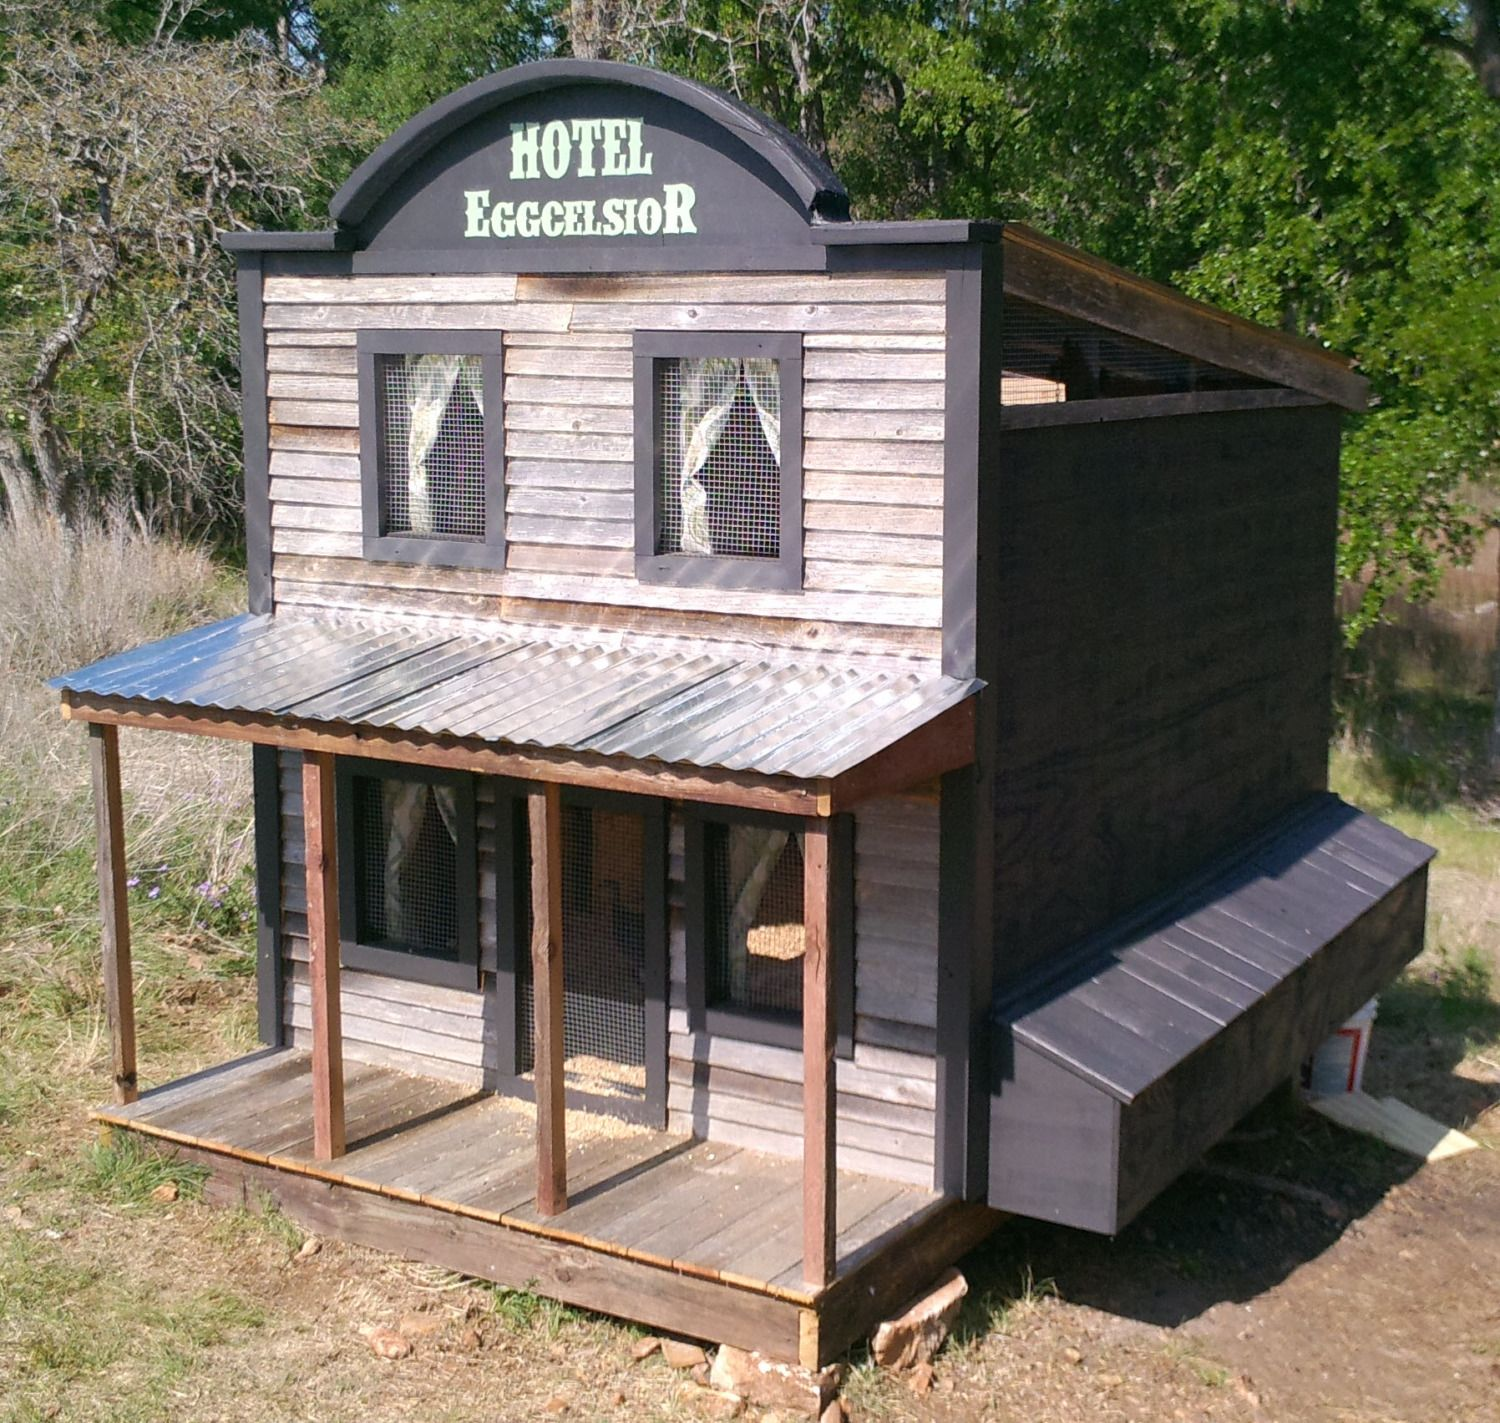 20 Of The Most Awesome Chicken Coops That Combine The